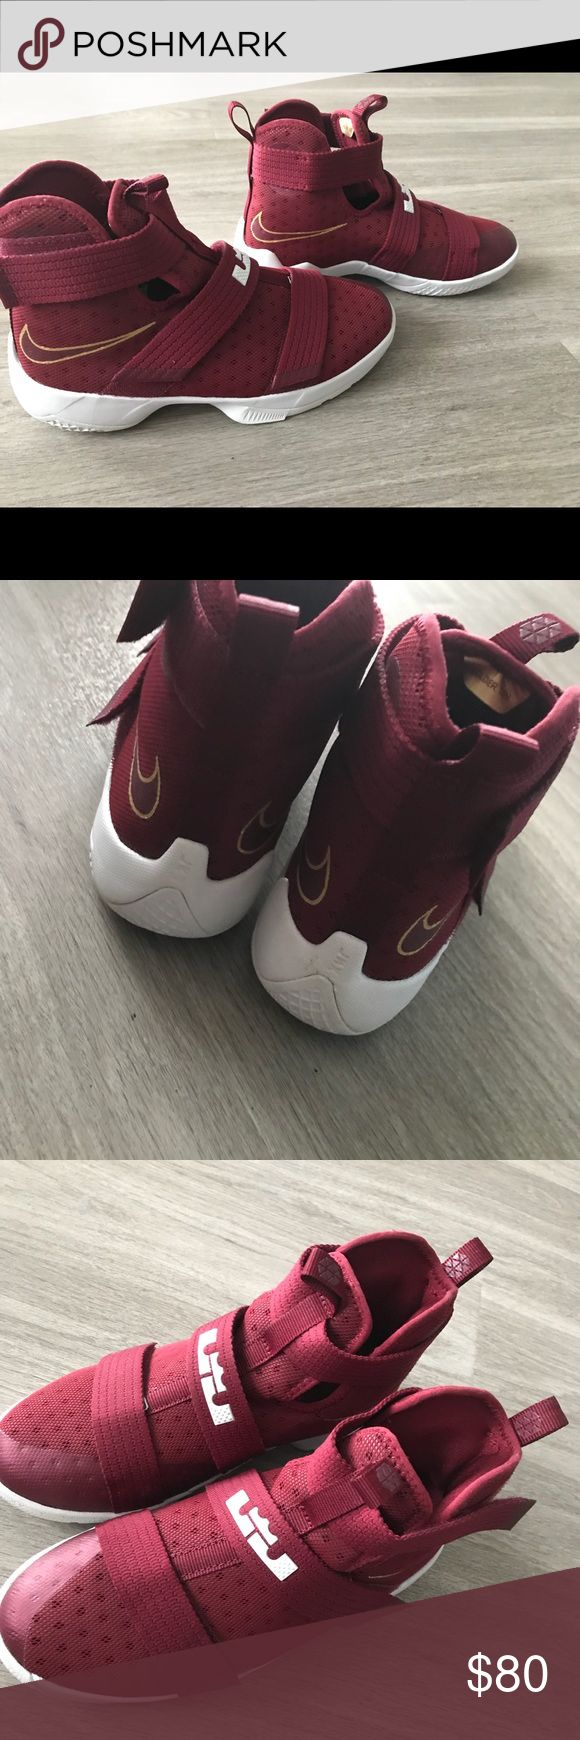 Lebron James sneakers Like new, perfect condition. The bottom of the shoe is a little dirty from the two times I've worn them. They are a children's size 6 and women's size 8 Nike Shoes Sneakers